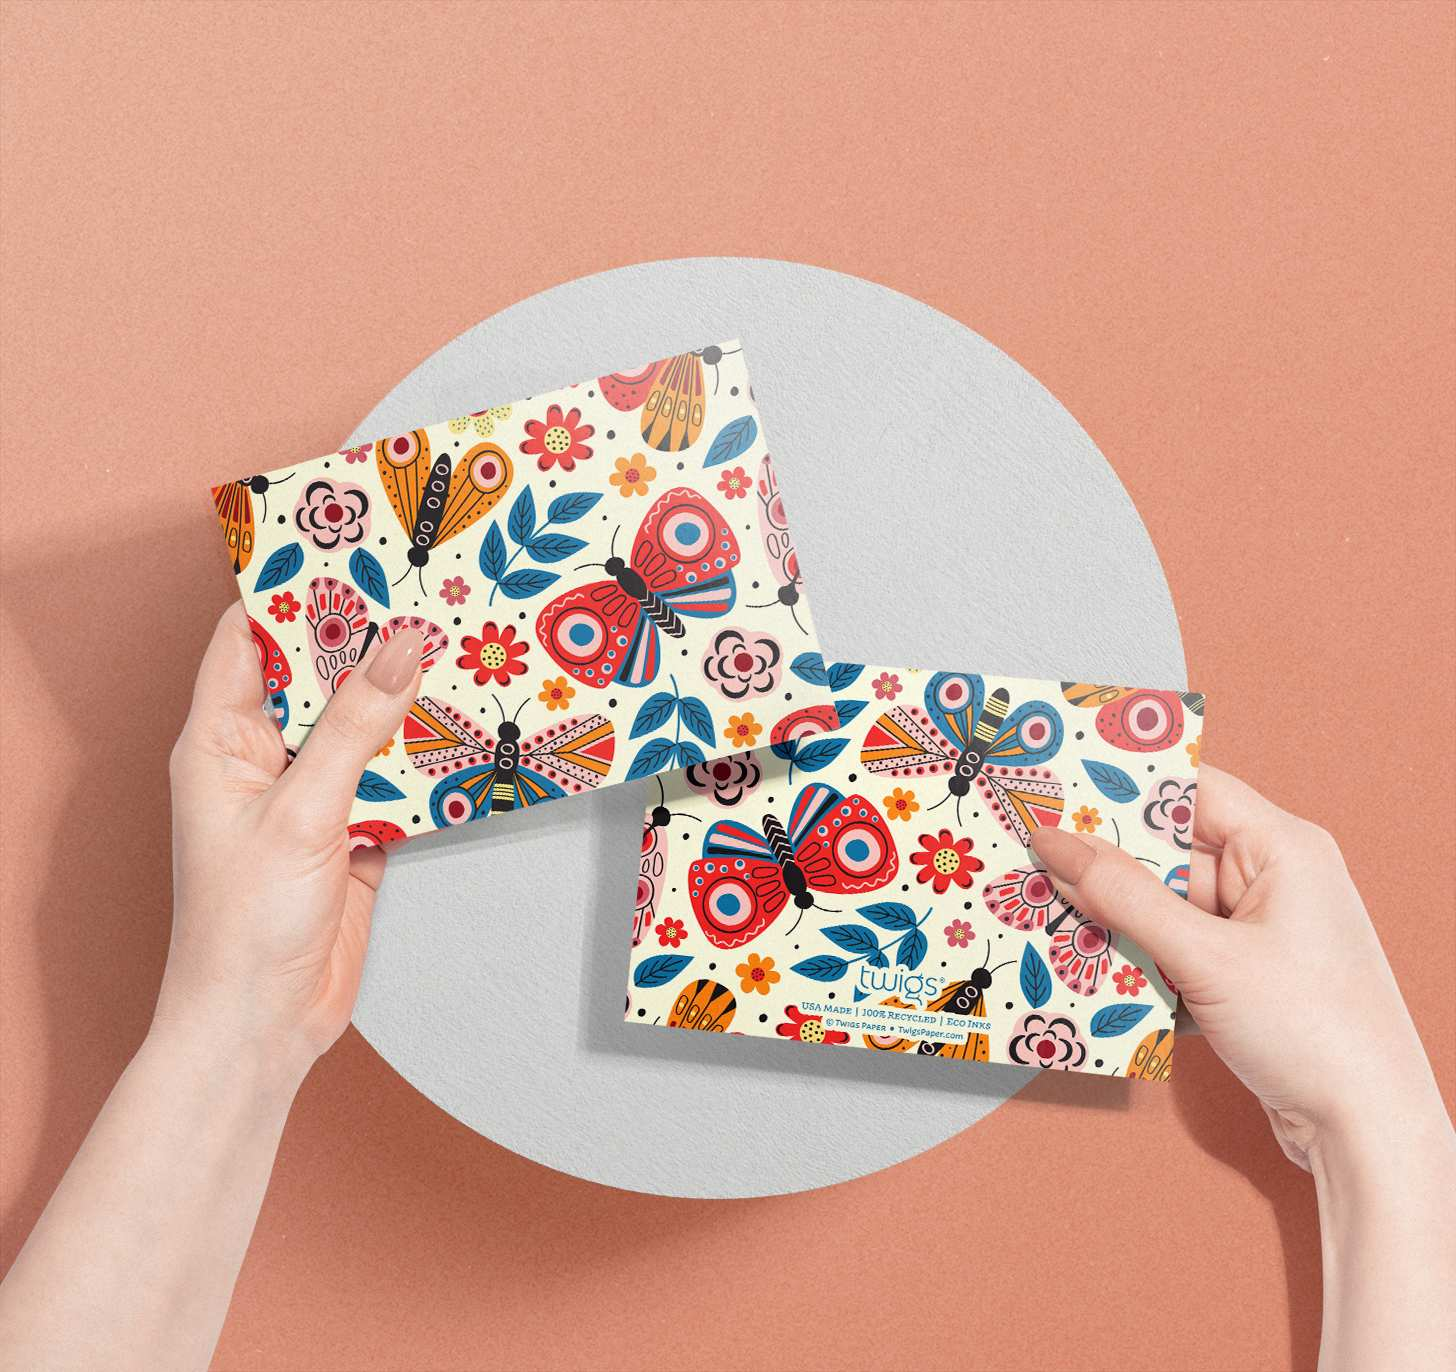 Hands holding Multicolored butterflies design on white card